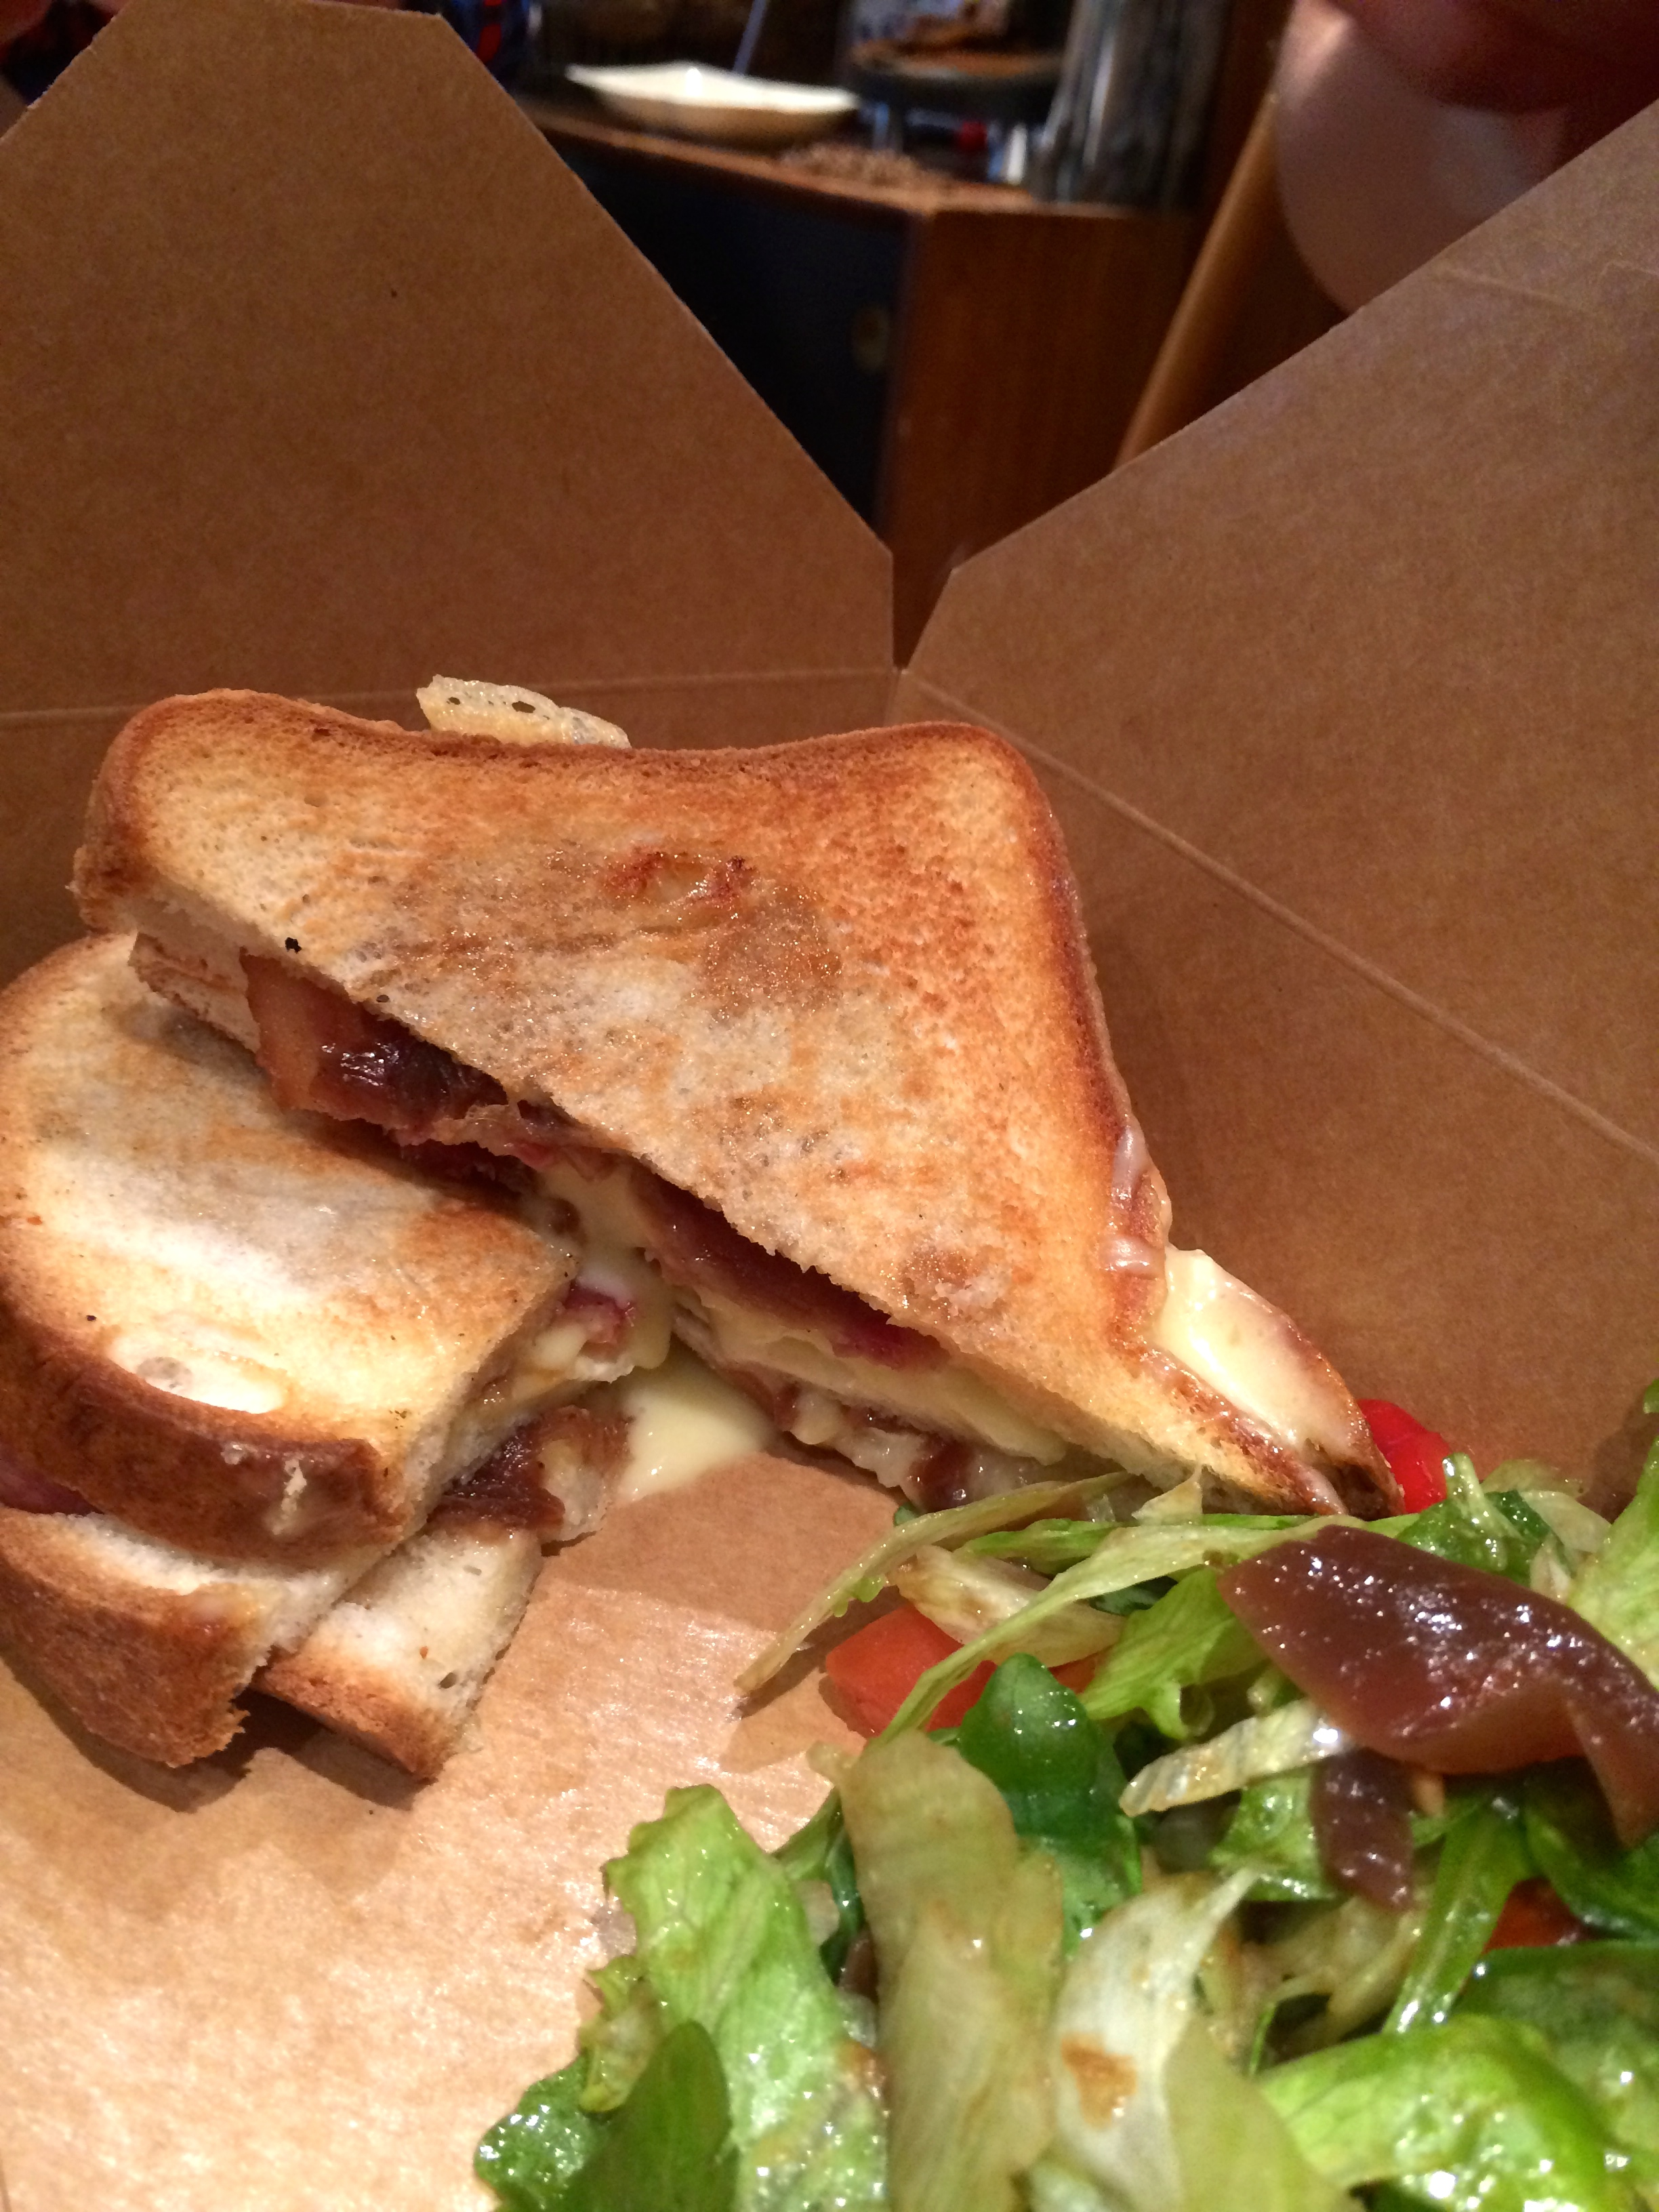 Smoked Bacon, Brie & Balsamic Onion on gluten-free bread